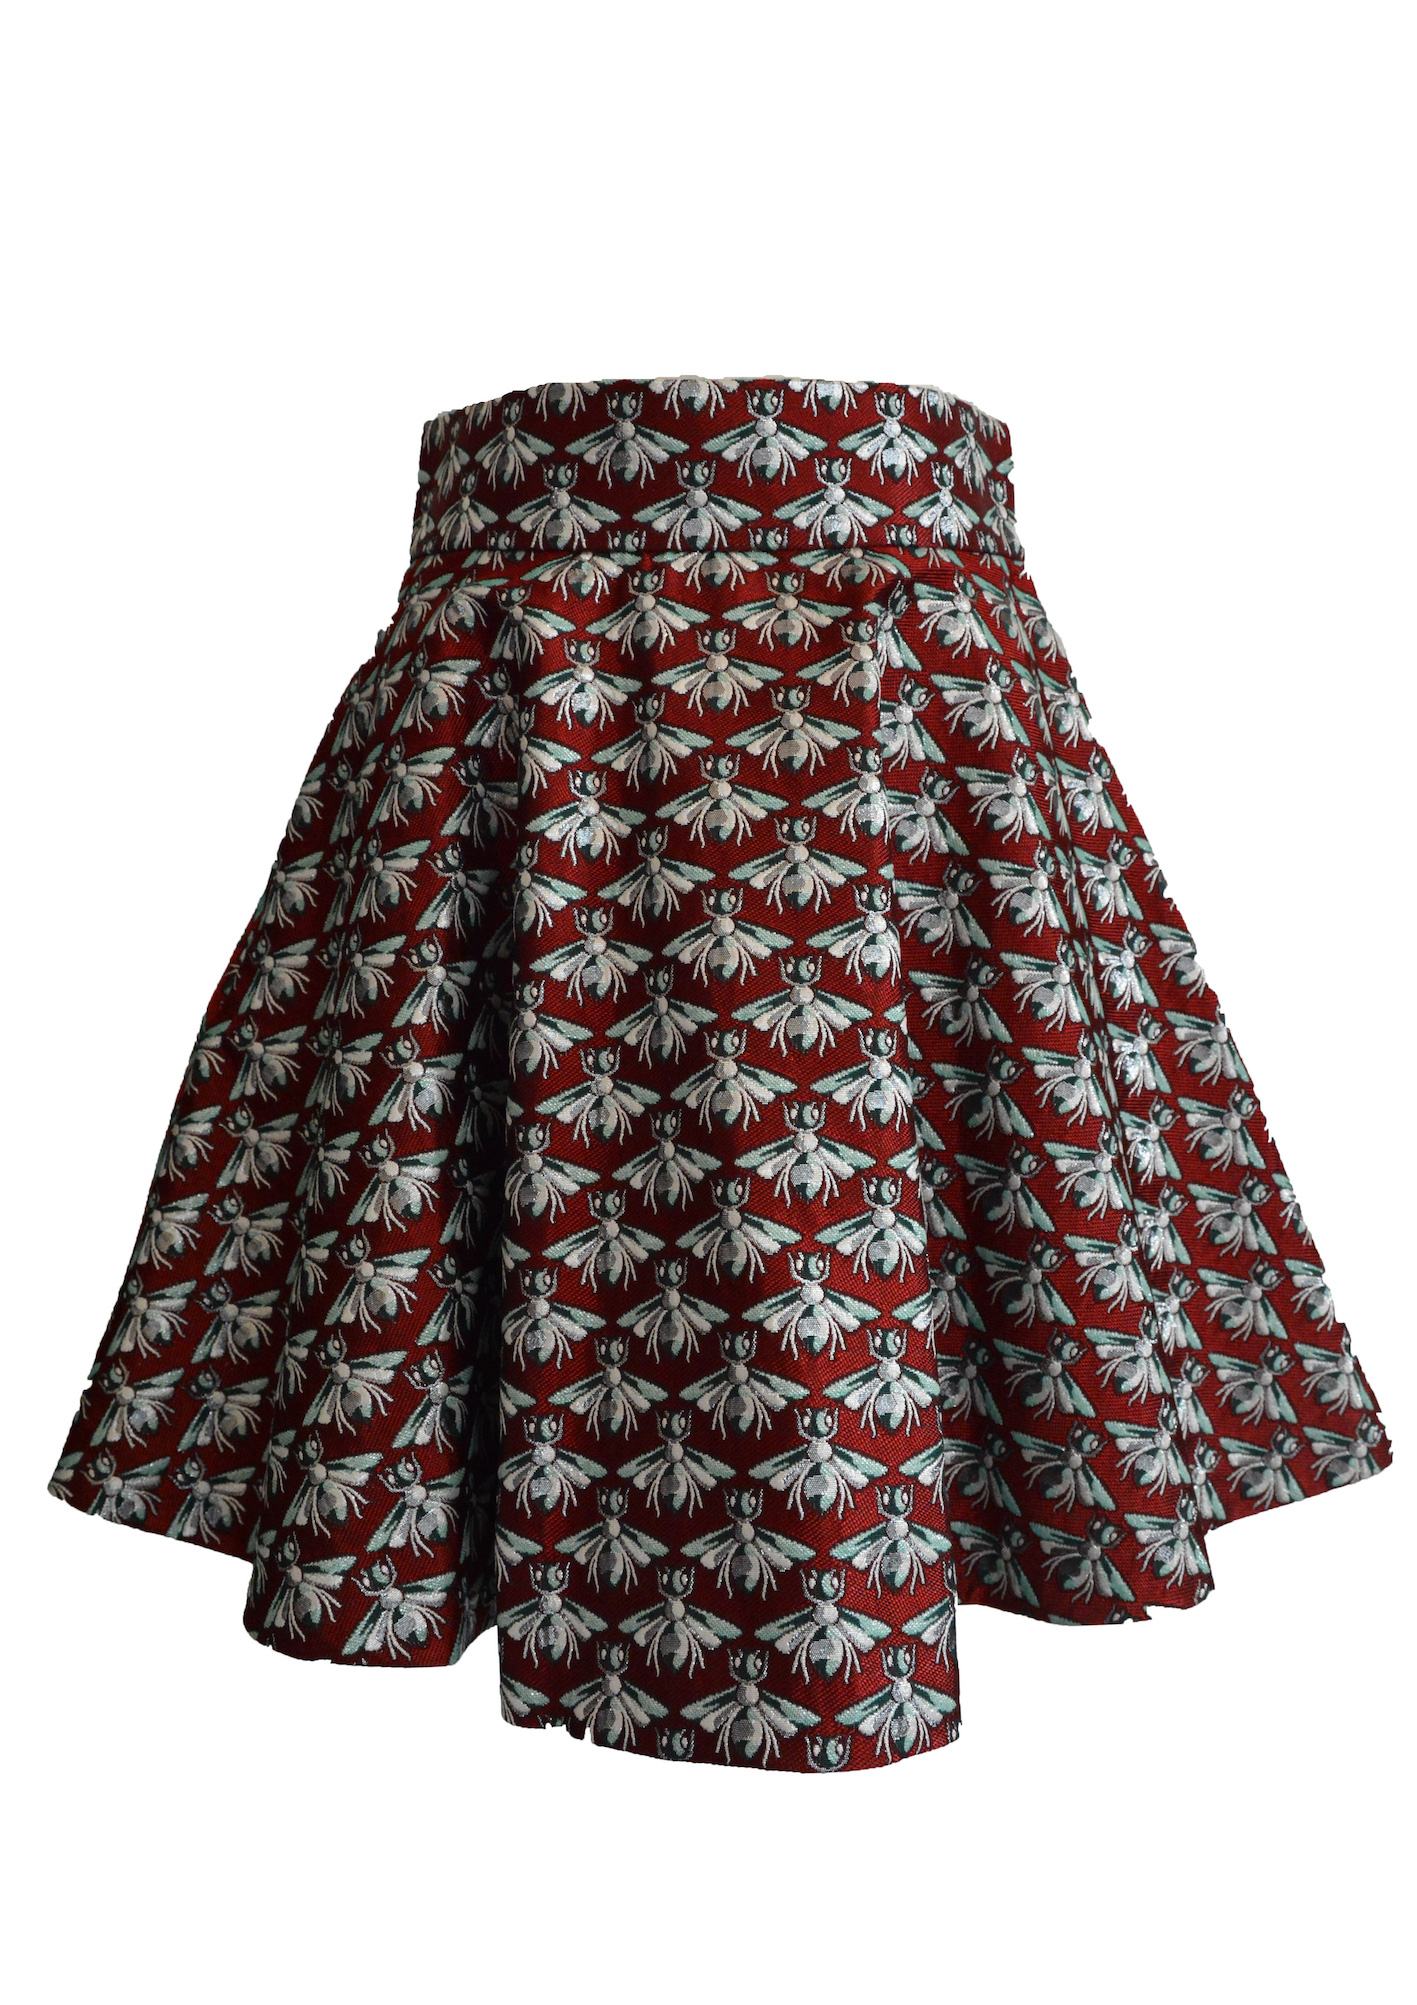 【selva secreta】HONEY BEE SKIRT(red)